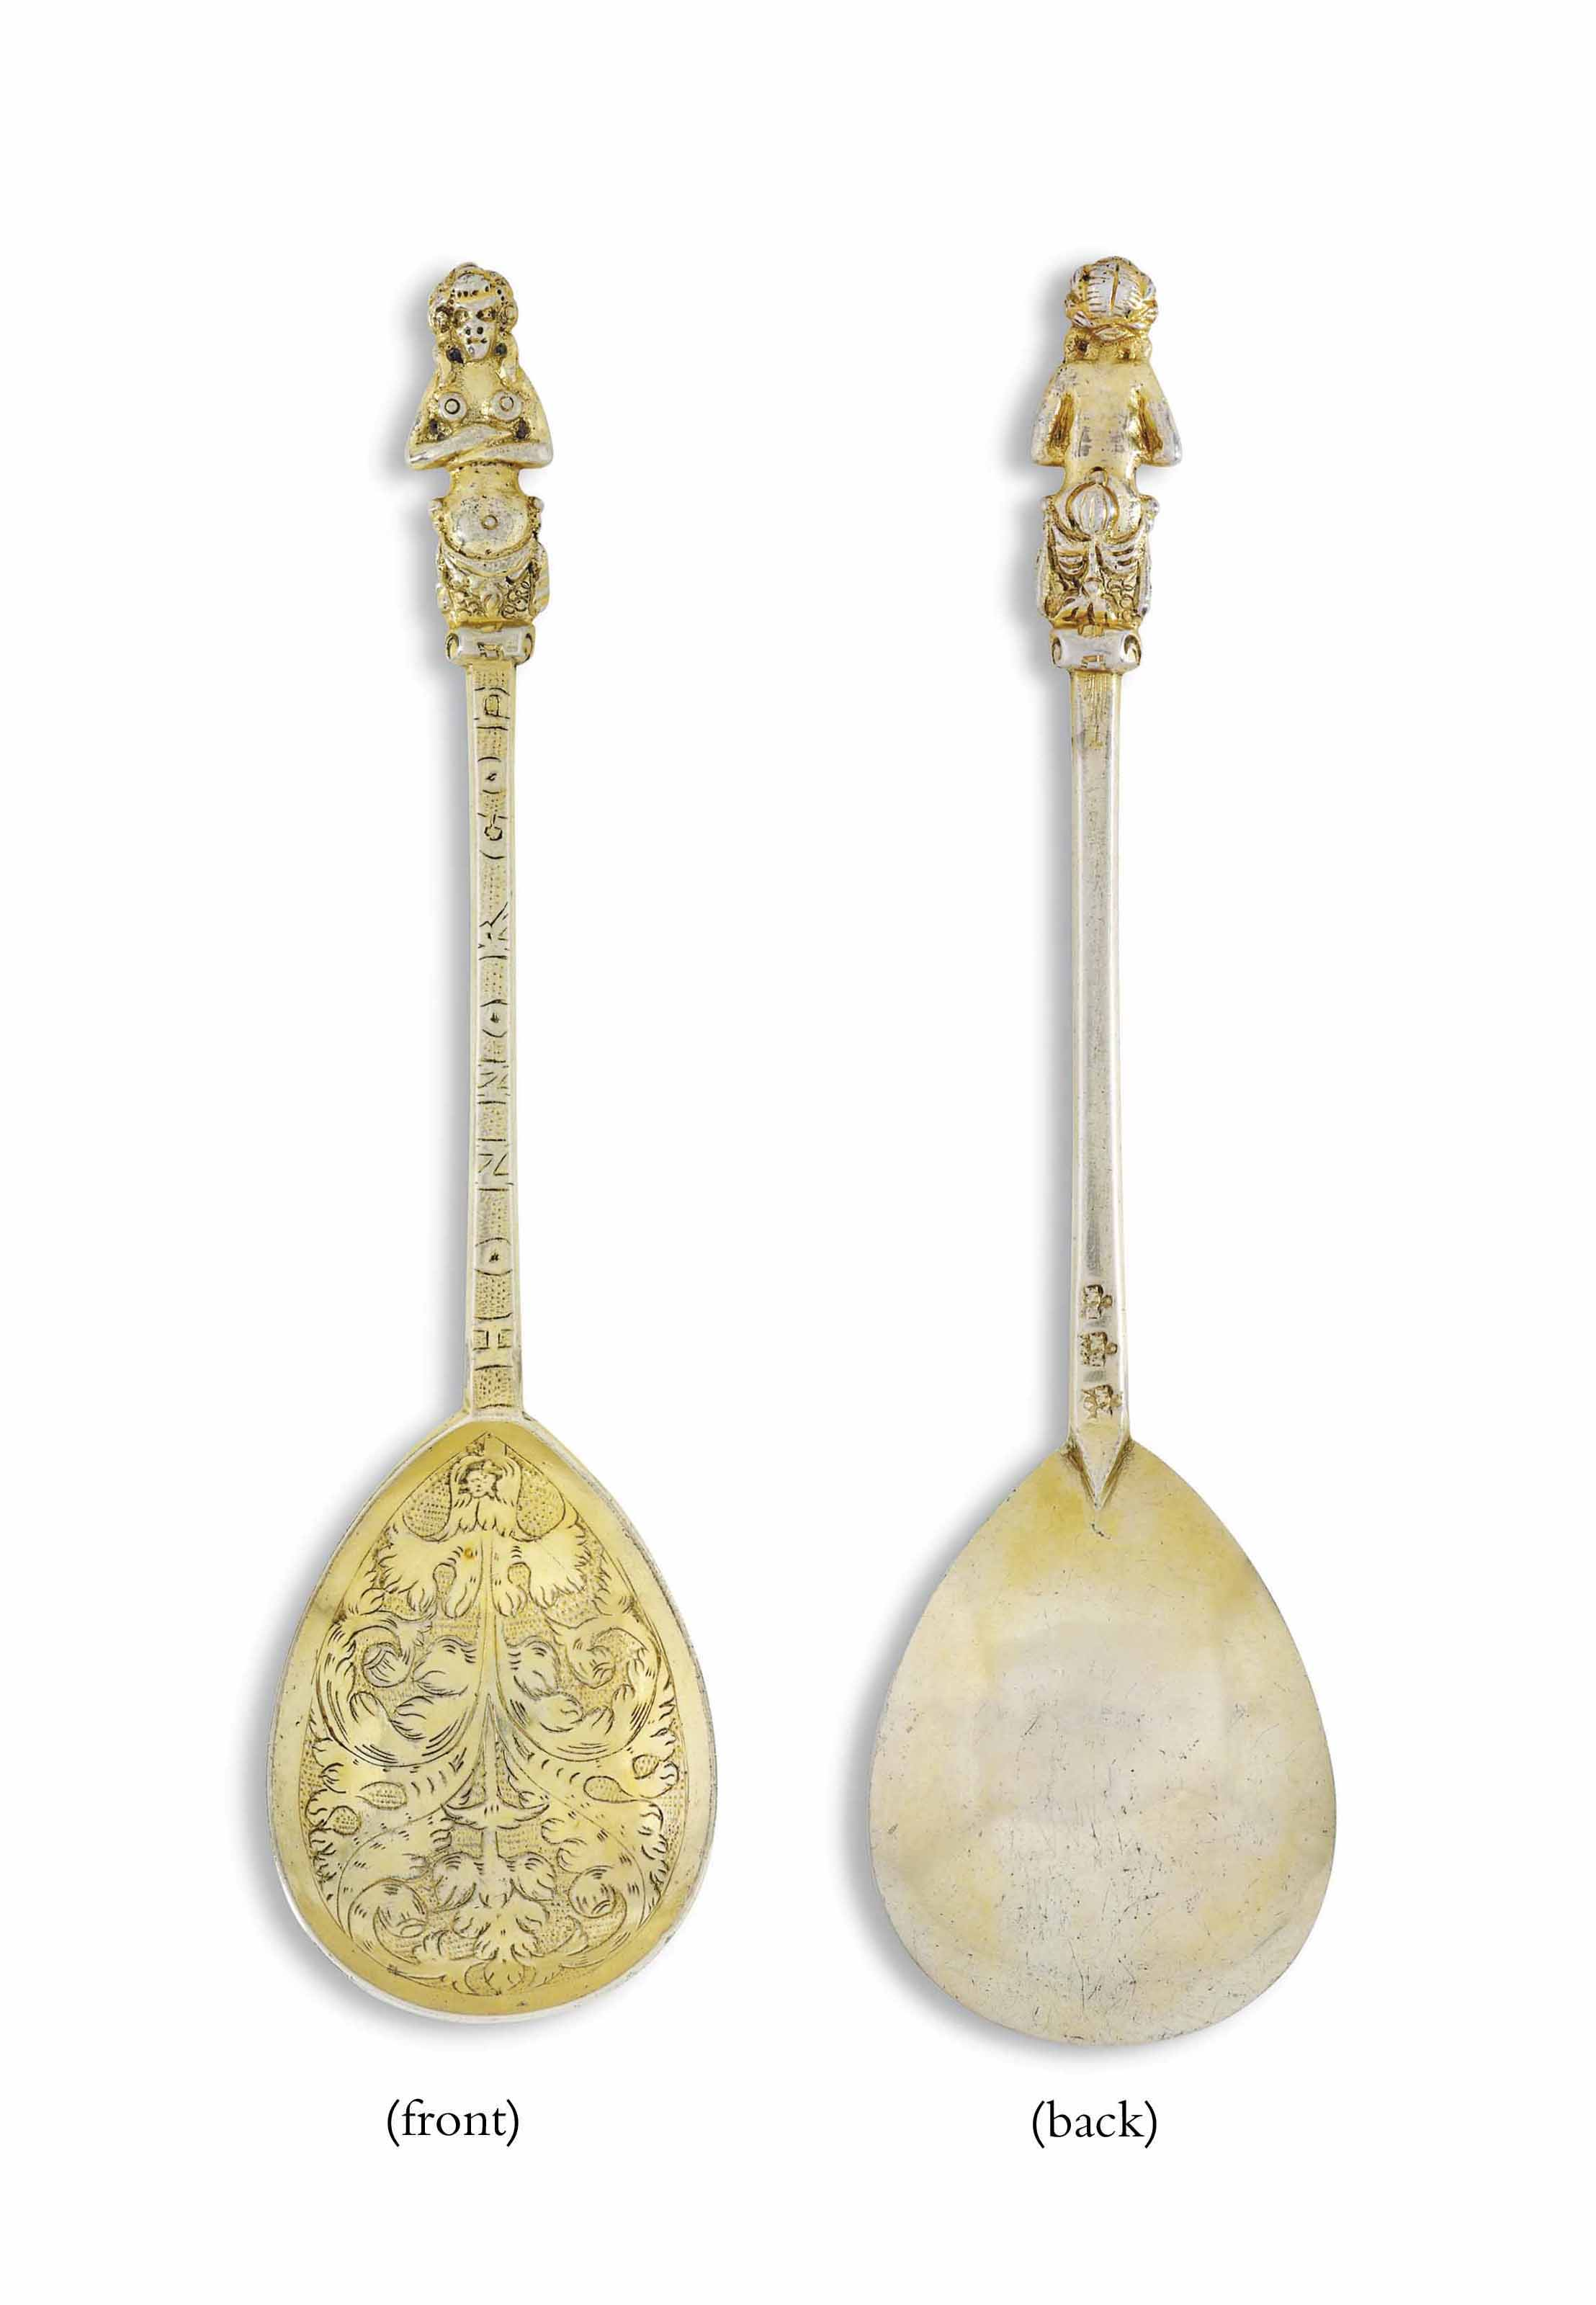 A JAMES I SILVER-GILT APHRODIT